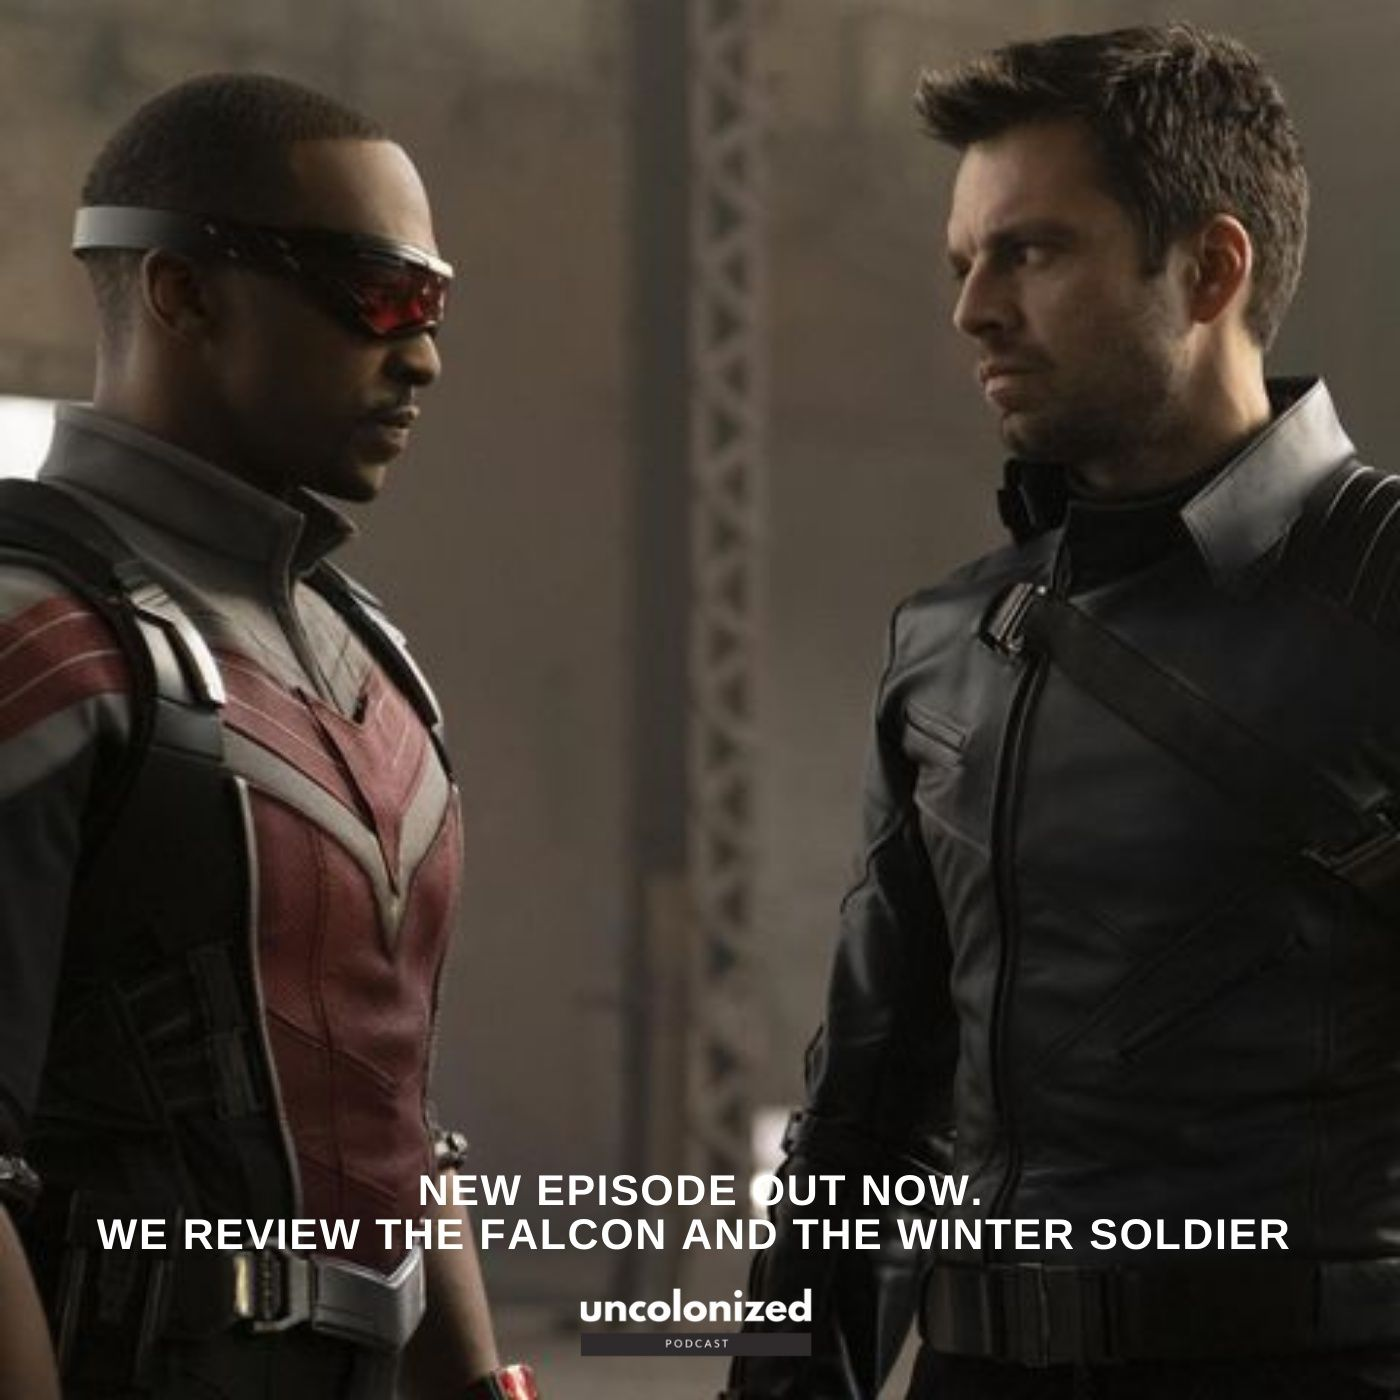 S07E03: The Falcon and the Winter Solider Review